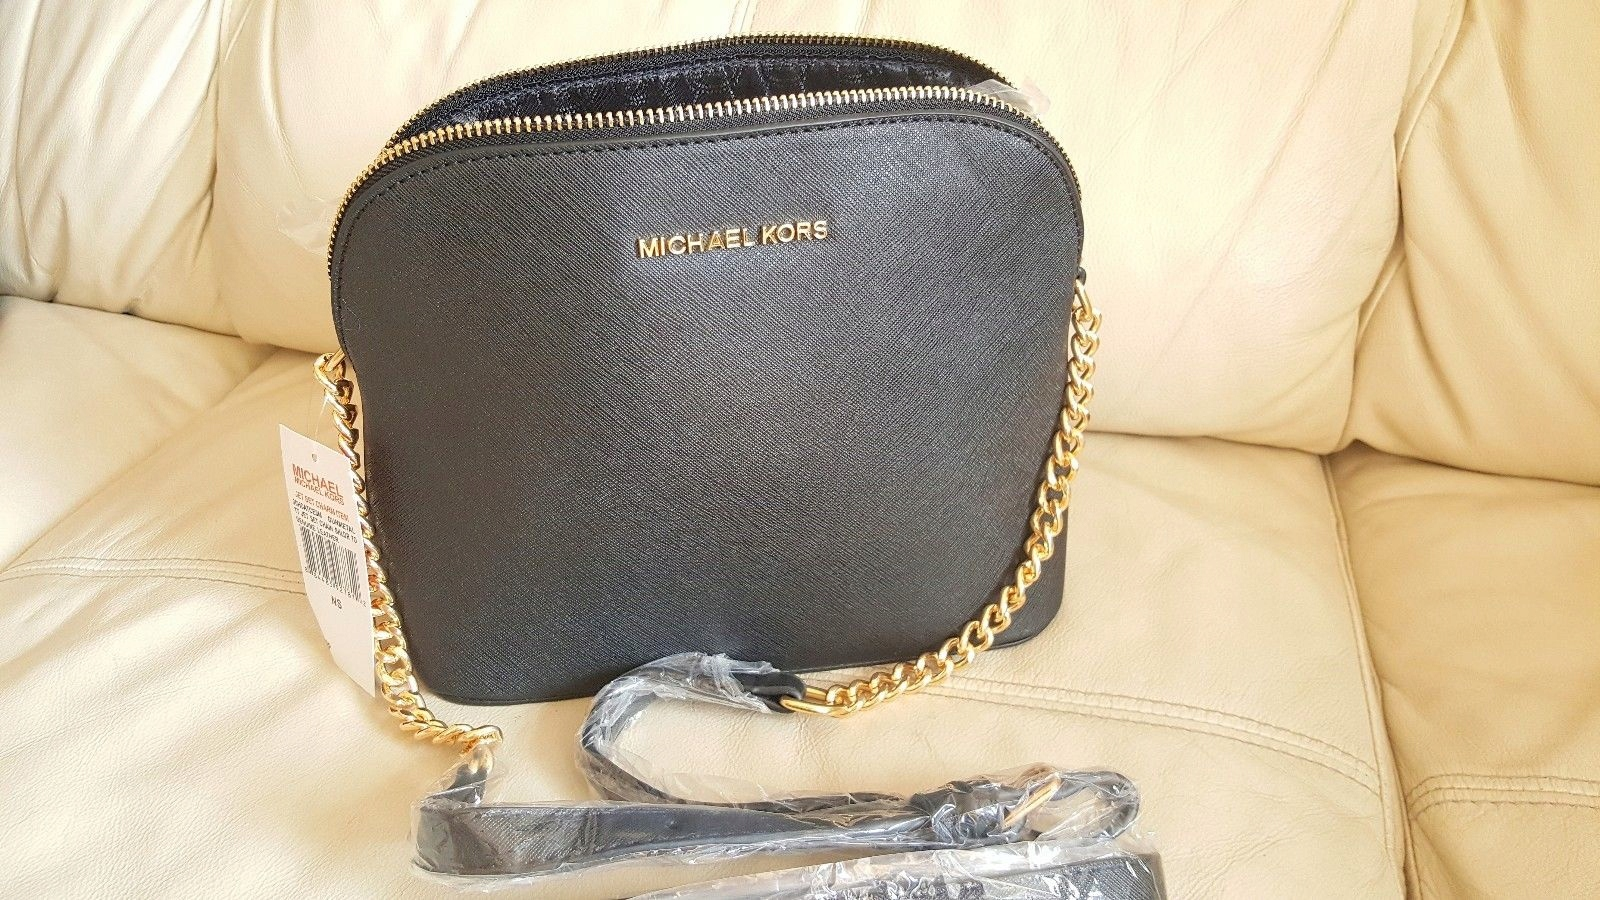 37007a32f9a0e MICHAEL KORS torebka JET SET LARGE CROSSBODY - 7678967596 ...